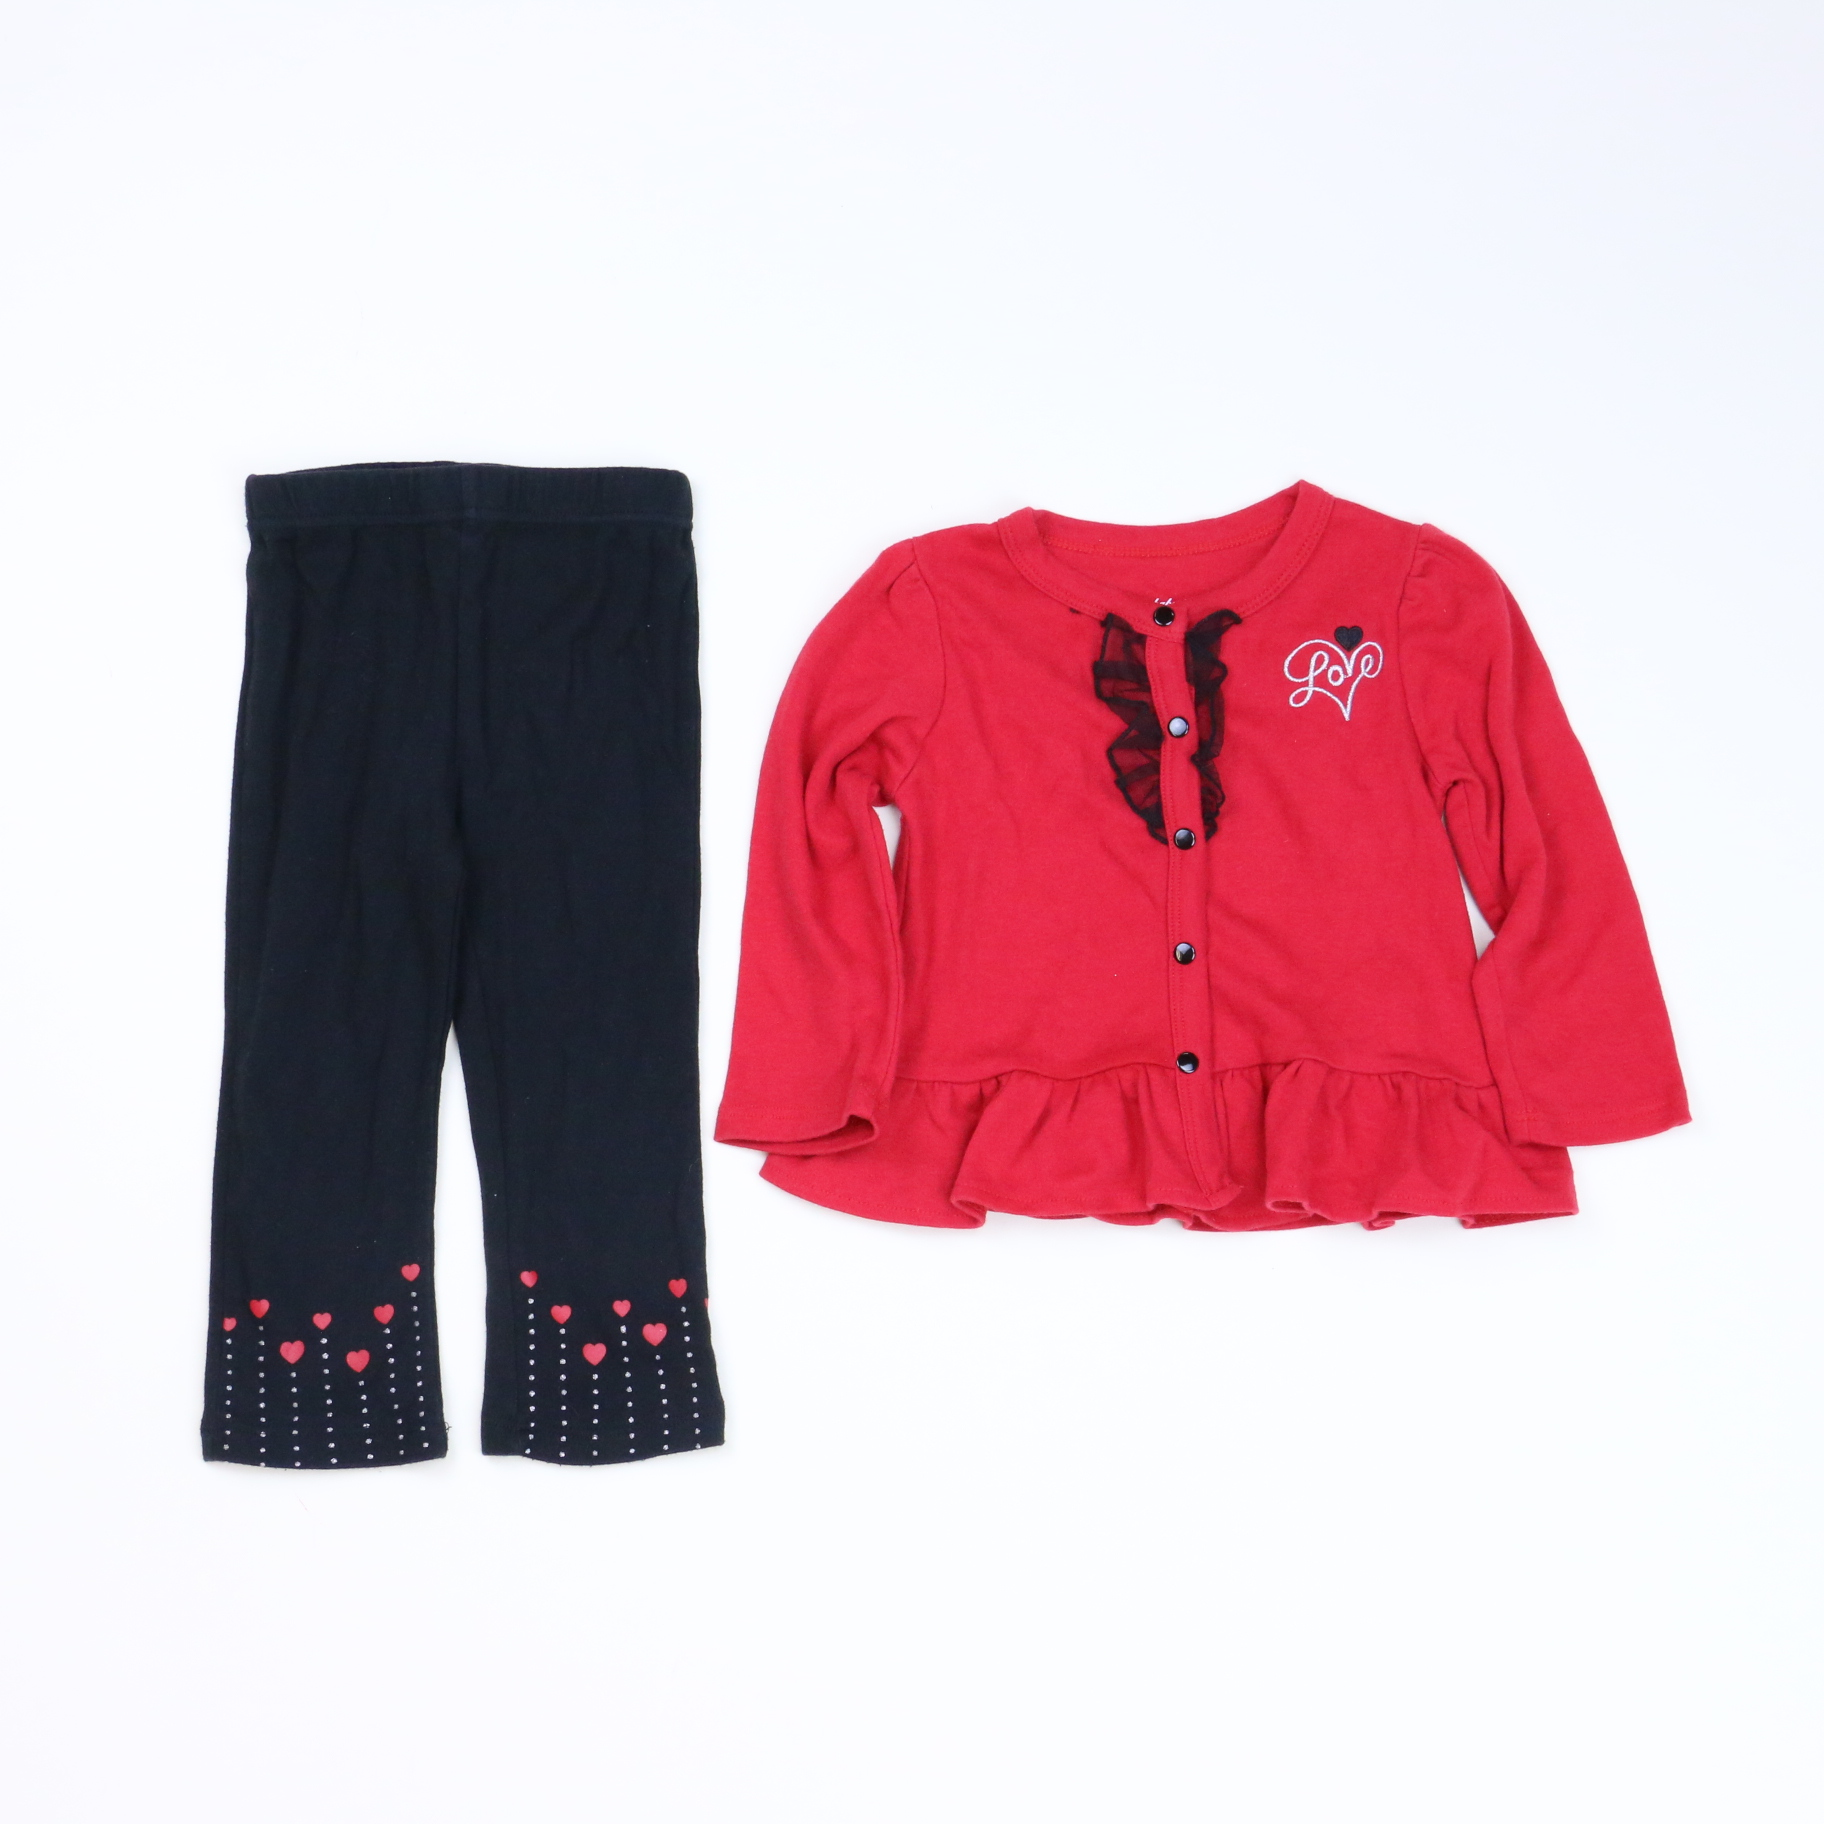 98305db98 2-pieces Apparel Sets size  24 Months - The Swoondle Society